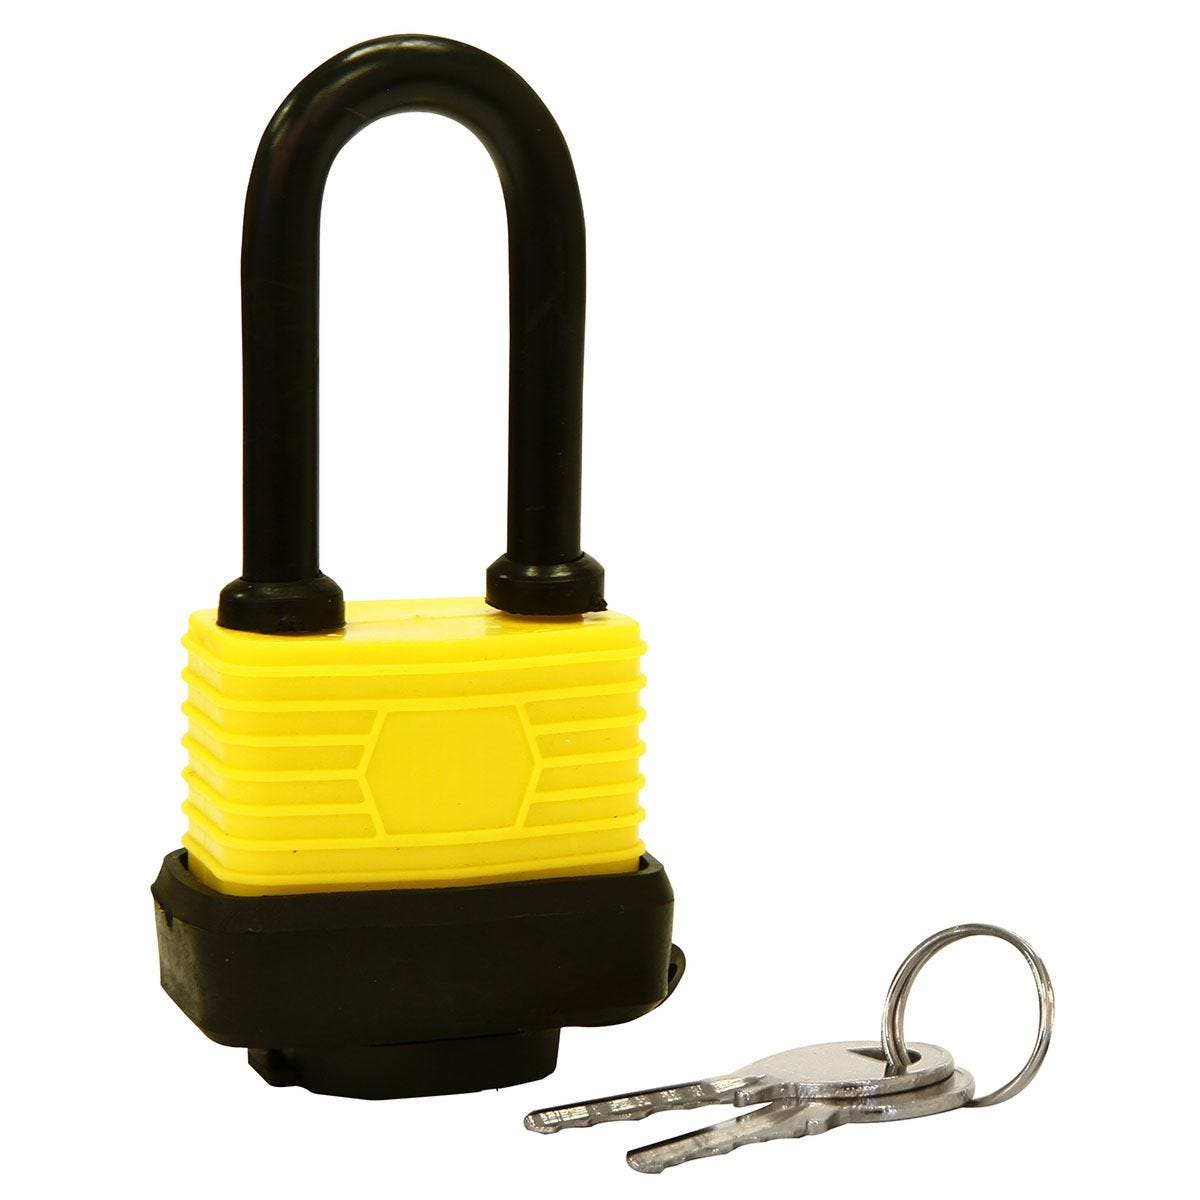 Rolson 40mm Long Shackle Laminated Steel Padlock with 2 Keys - Black & Yellow